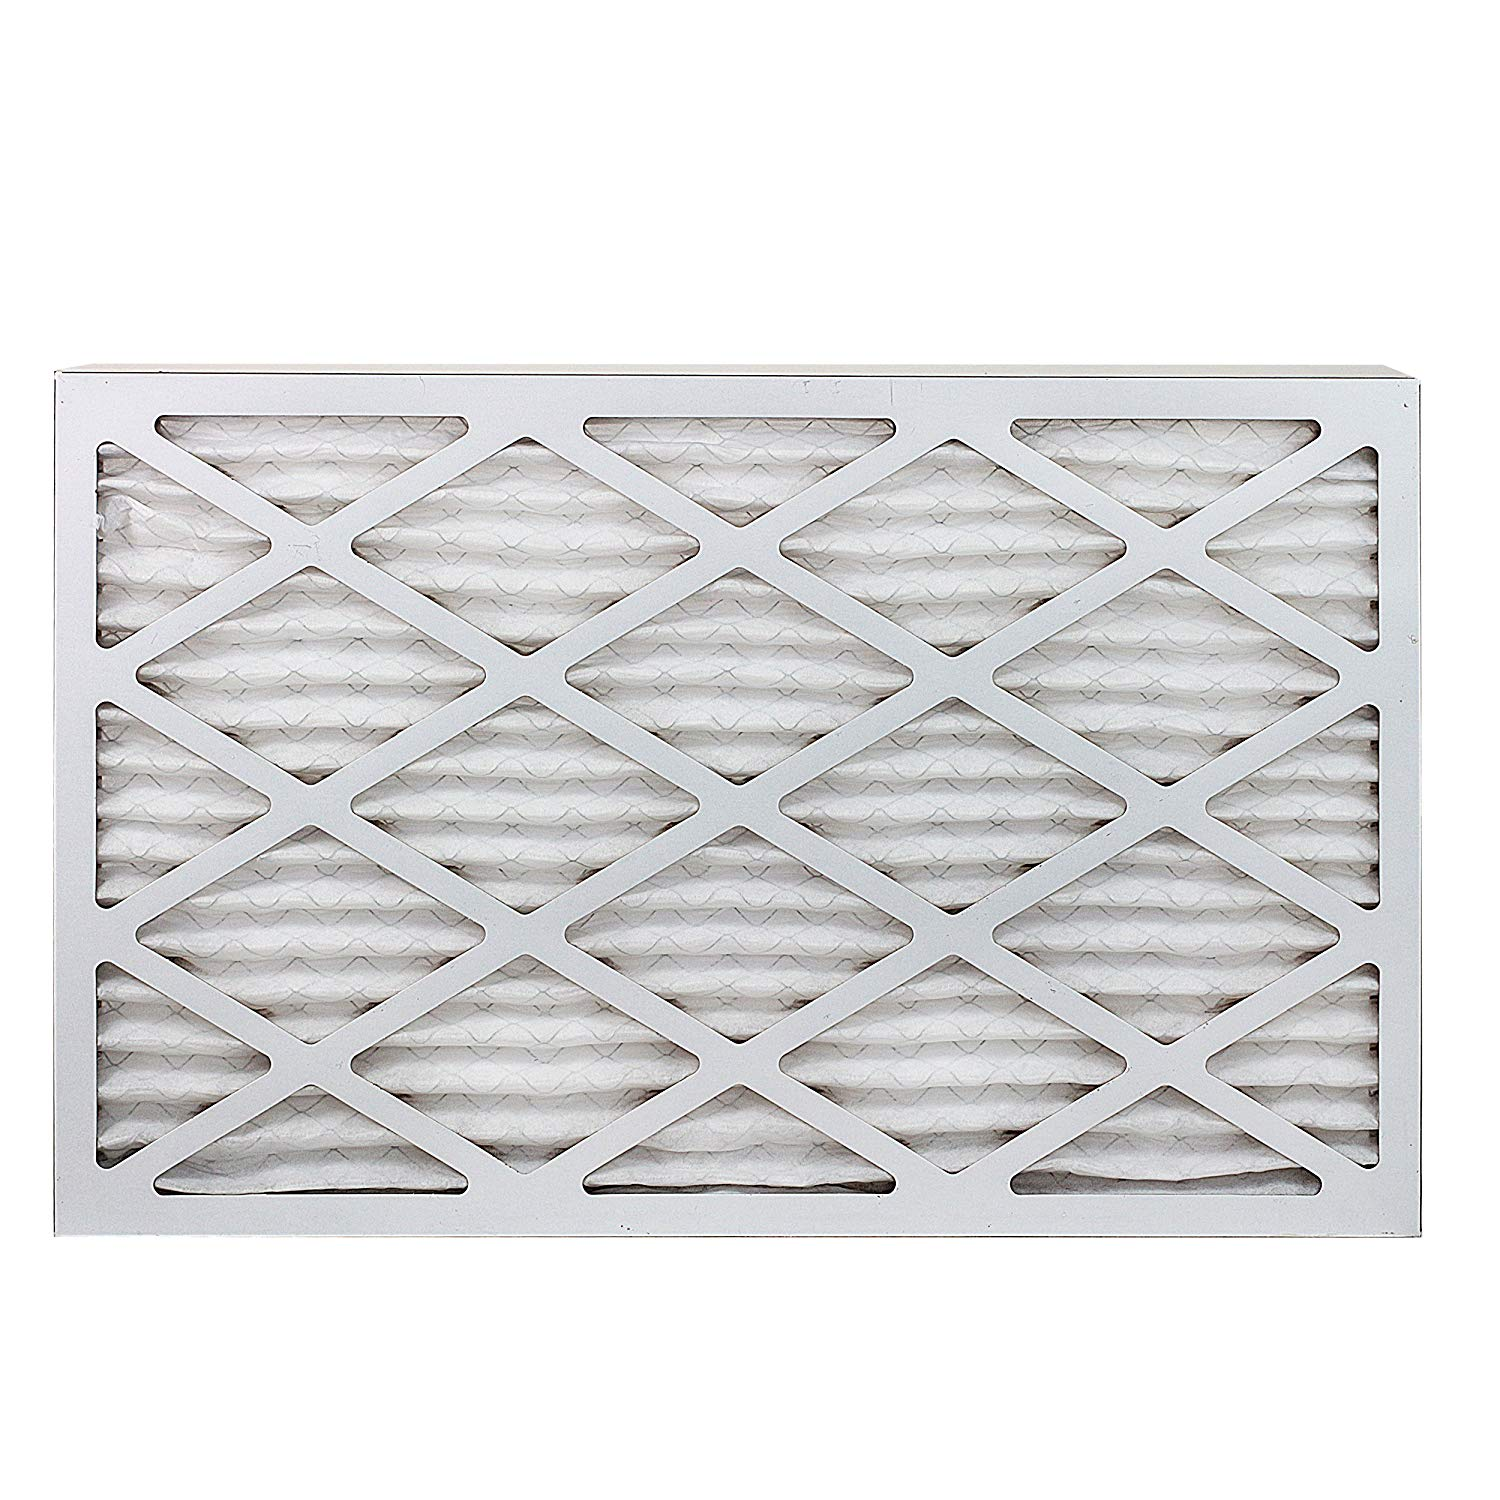 FilterBuy AFB Silver MERV 8 16x25x1 Pleated AC Furnace Air Filter in white background